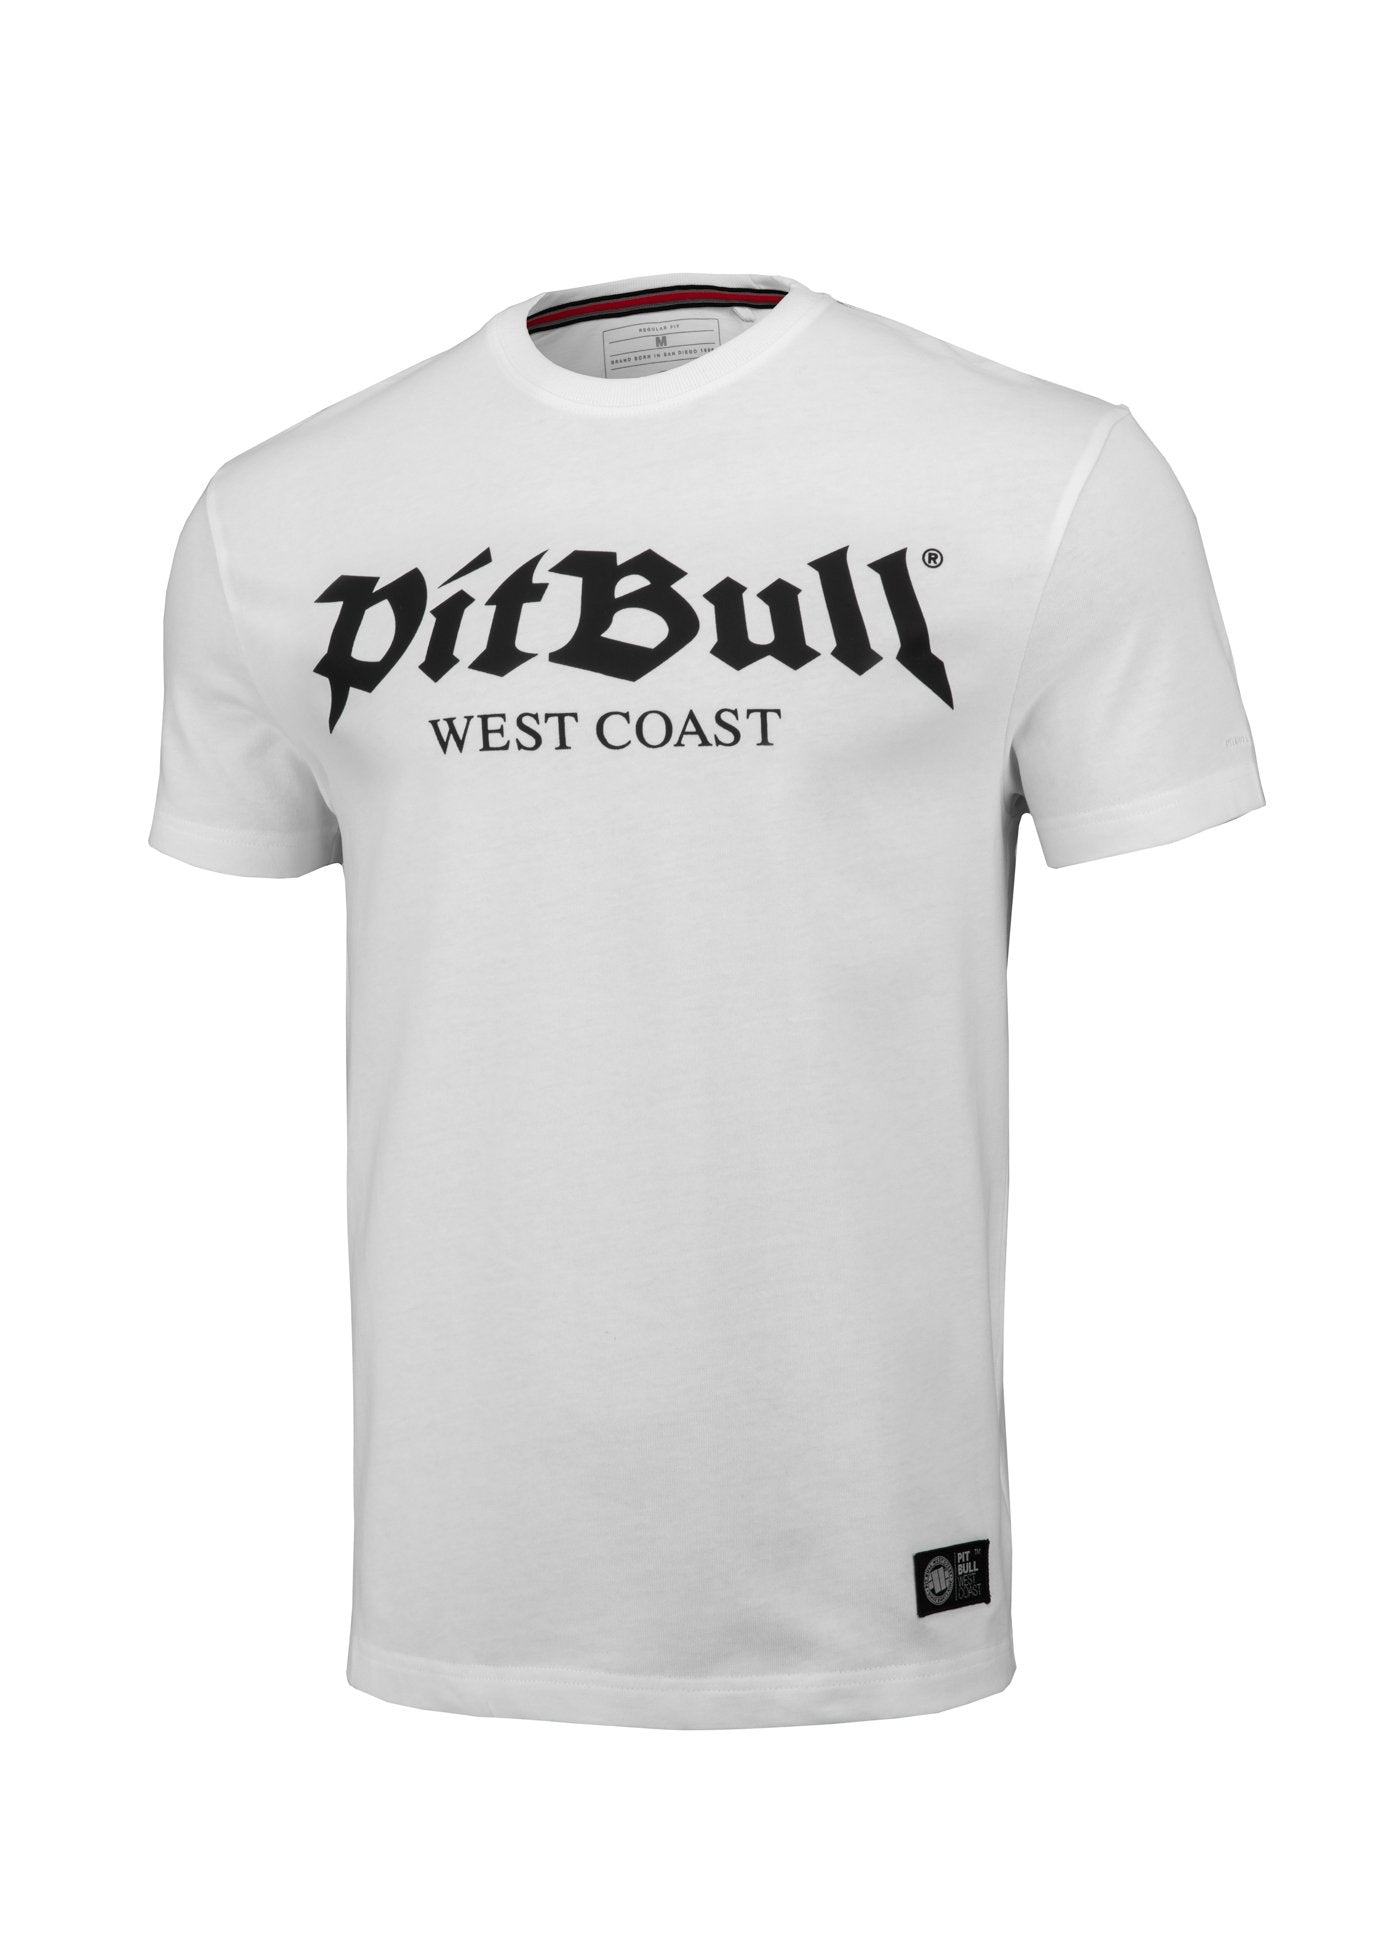 T-shirt Regular Fit Old Logo White - Pitbull West Coast U.S.A.